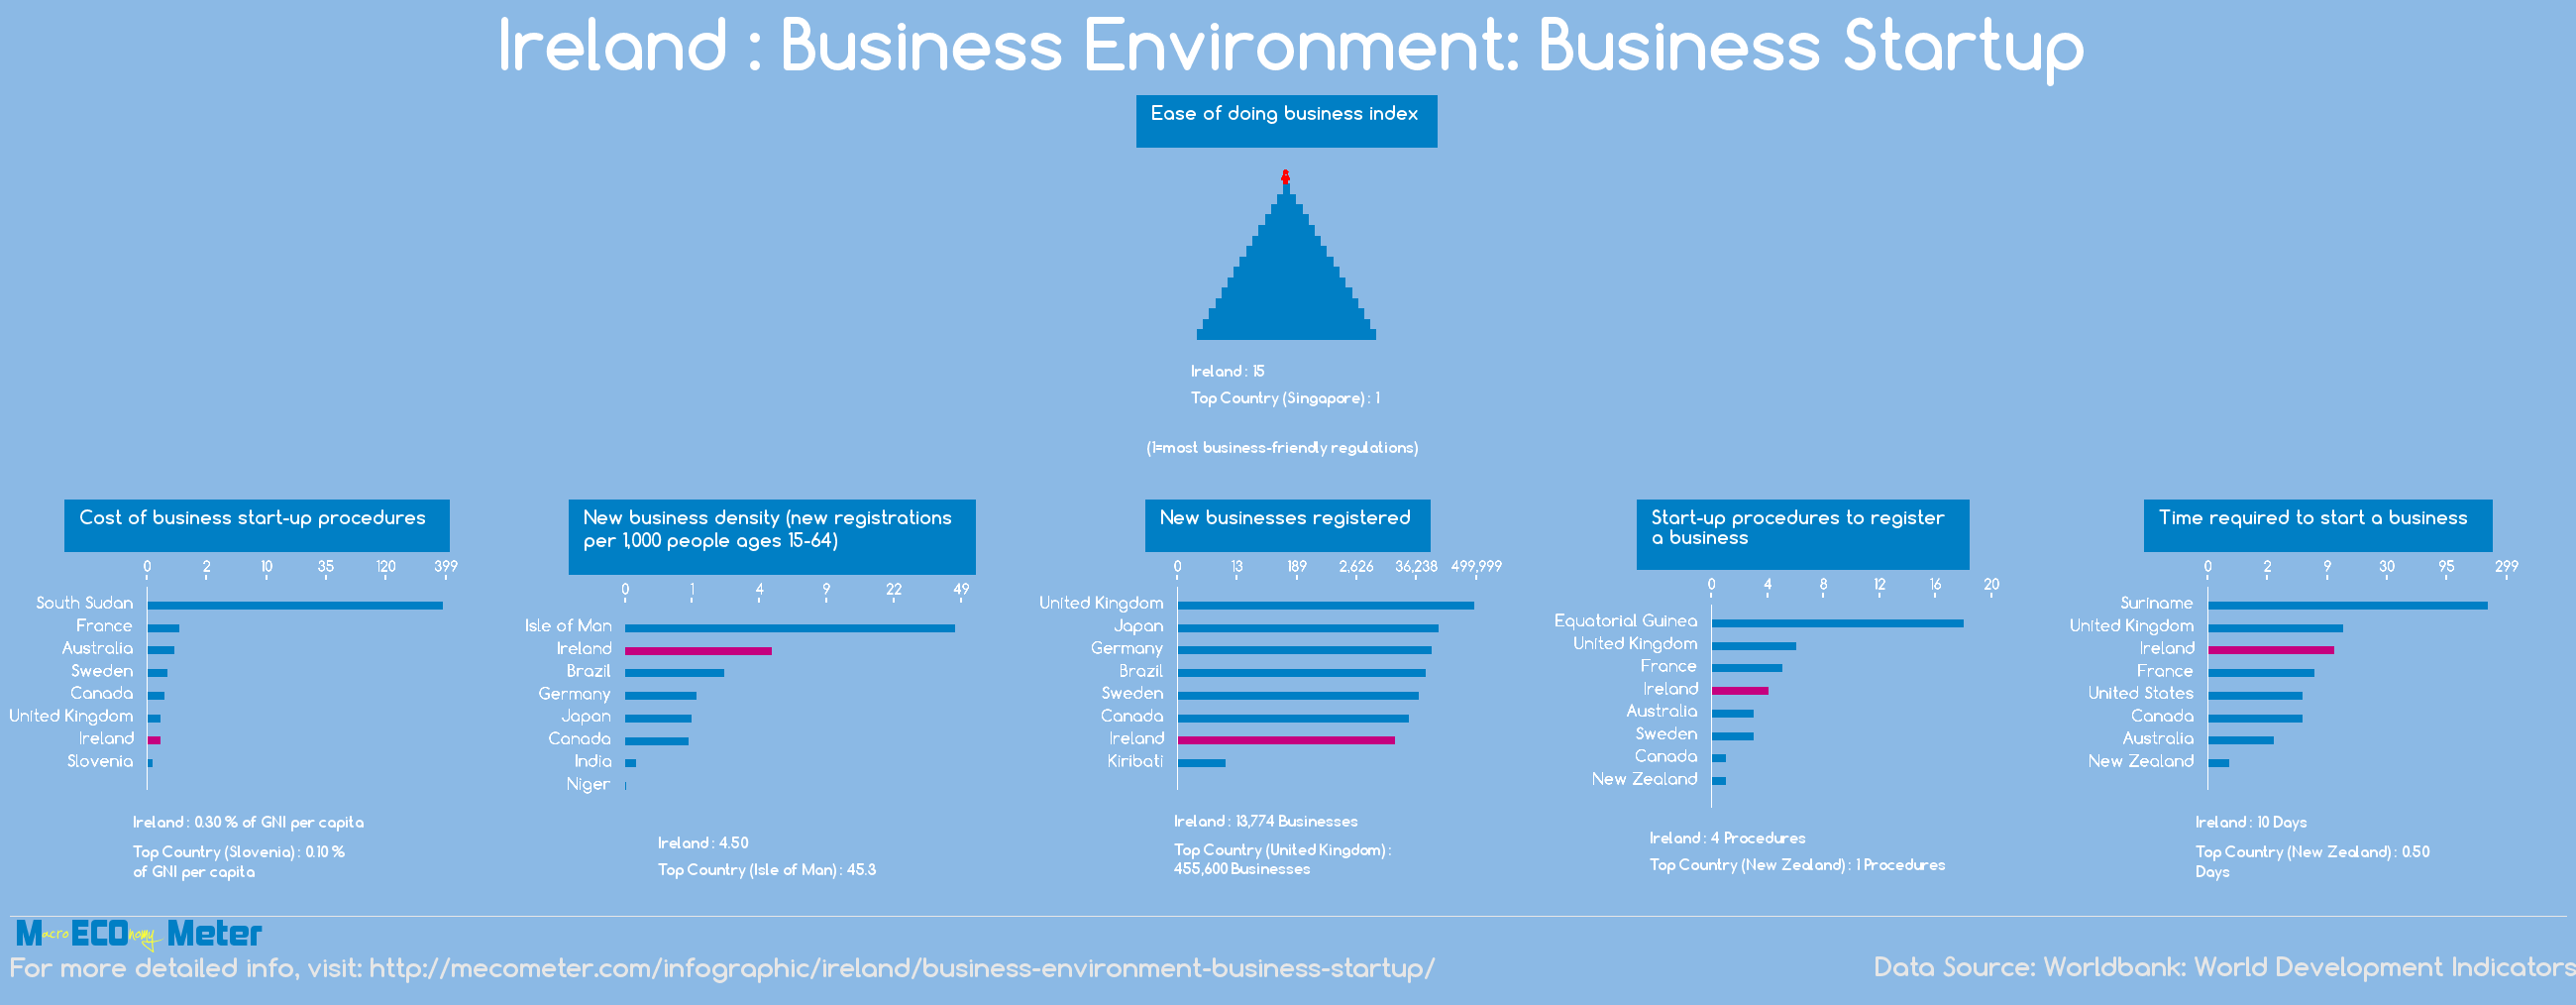 Ireland : Business Environment: Business Startup